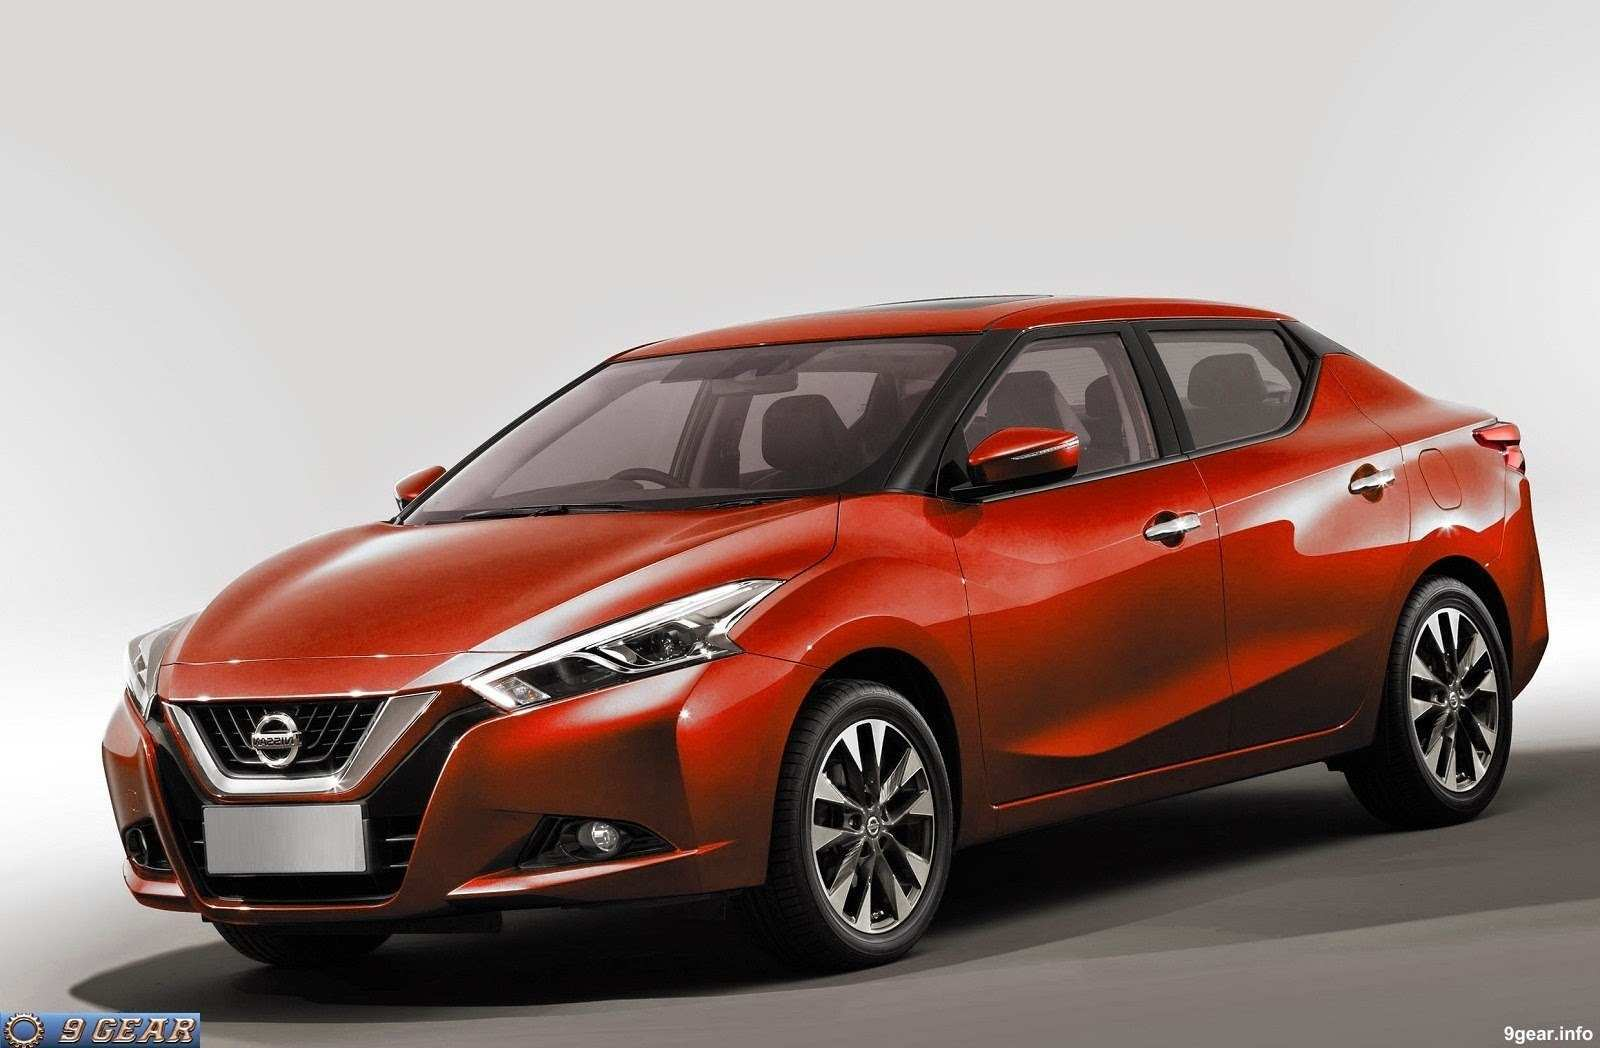 70 All New 2020 Nissan Lannia Release Date And Concept